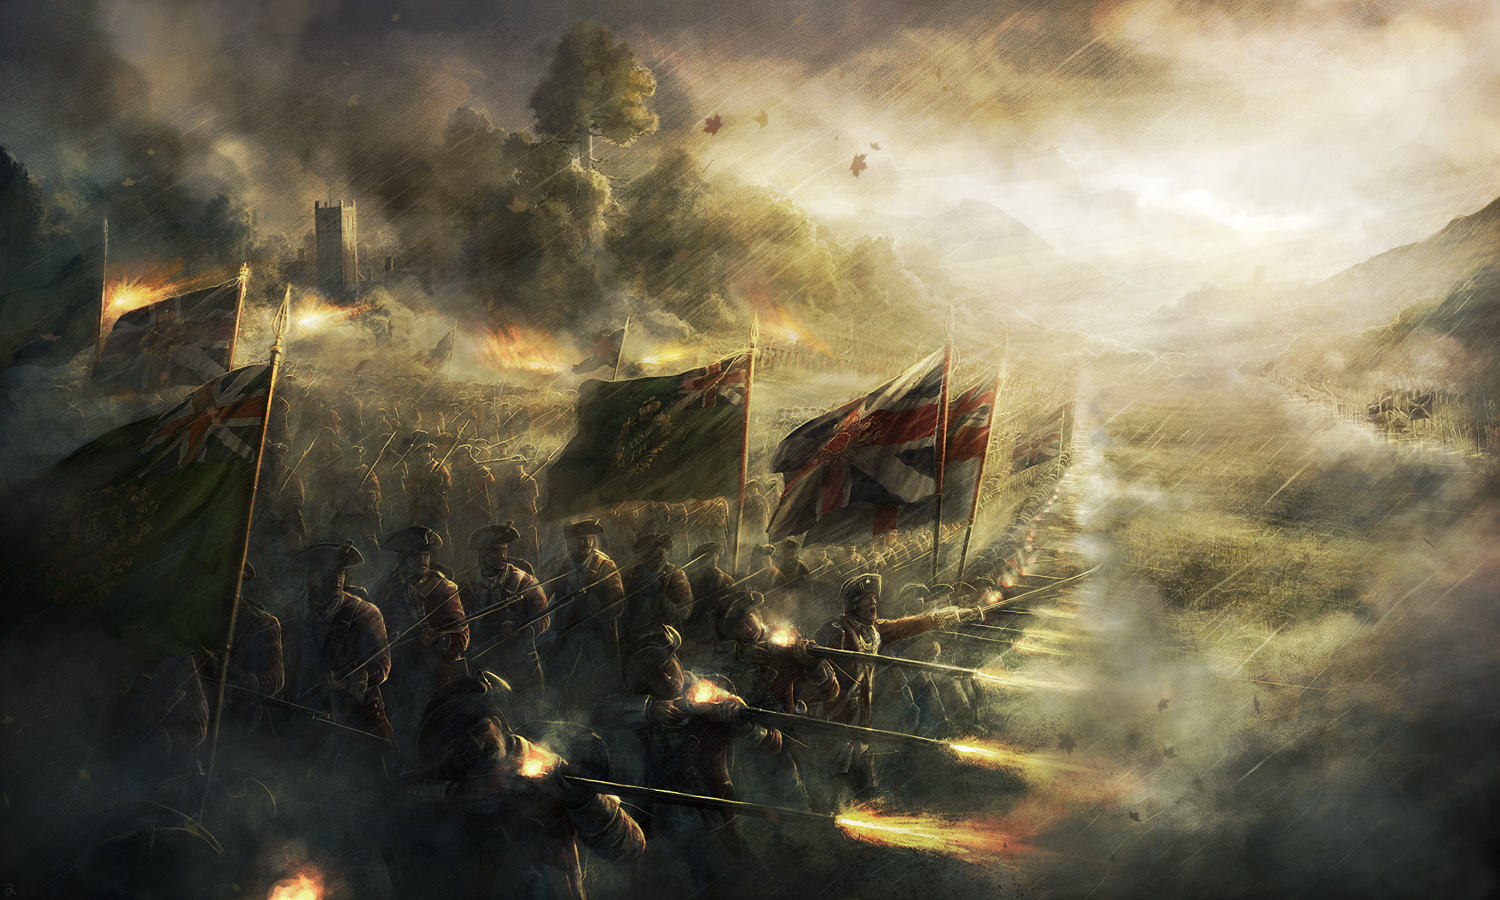 and historical battle artworks and wallpapers 1 Design Utopia Trend 1500x900